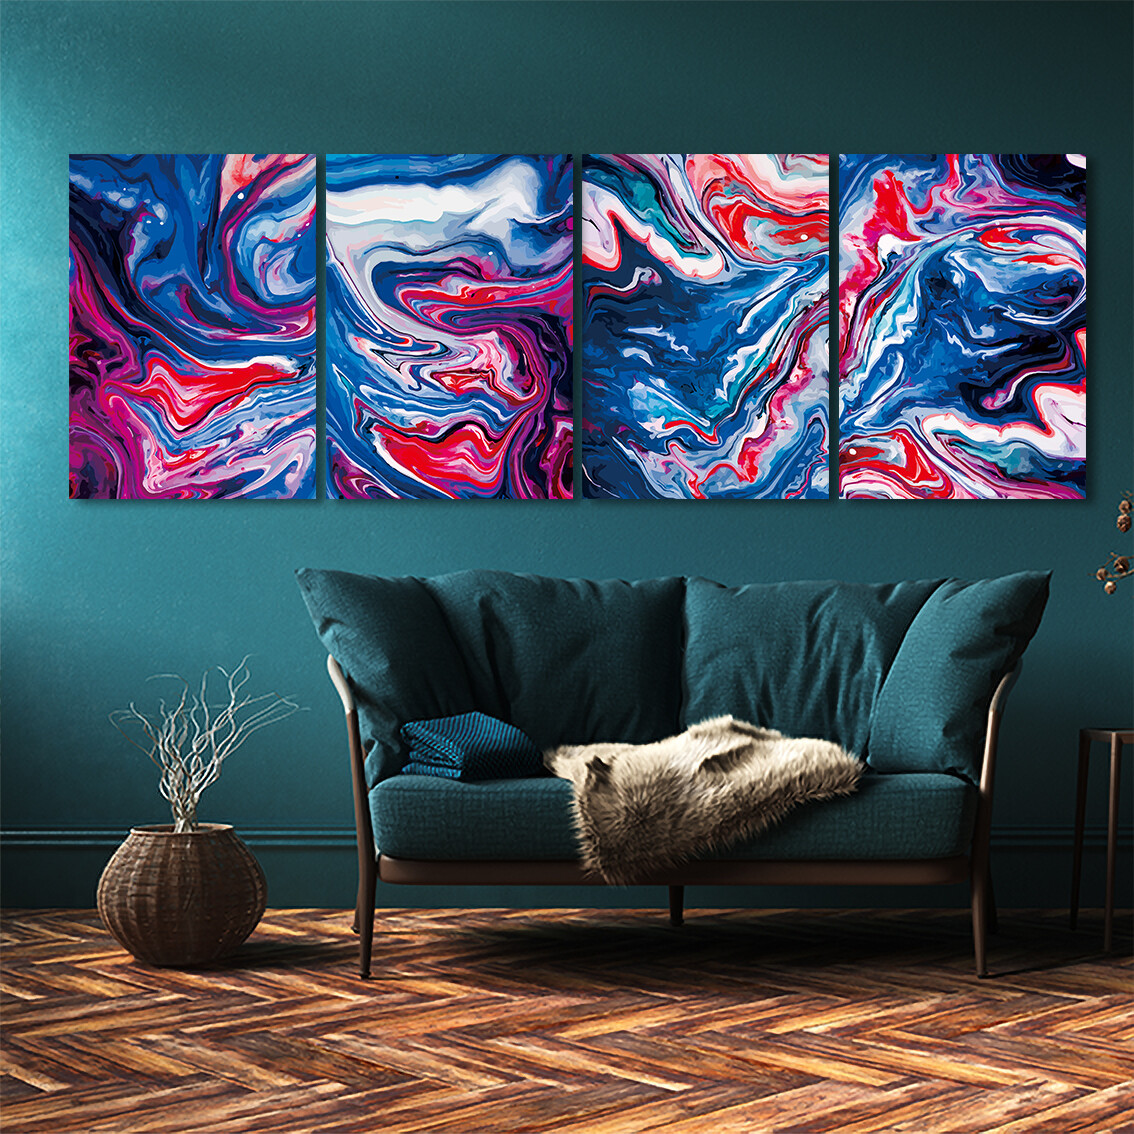 Waves  - Modern Luxury Wall art Printed on Acrylic Glass - Frameless and Ready to Hang